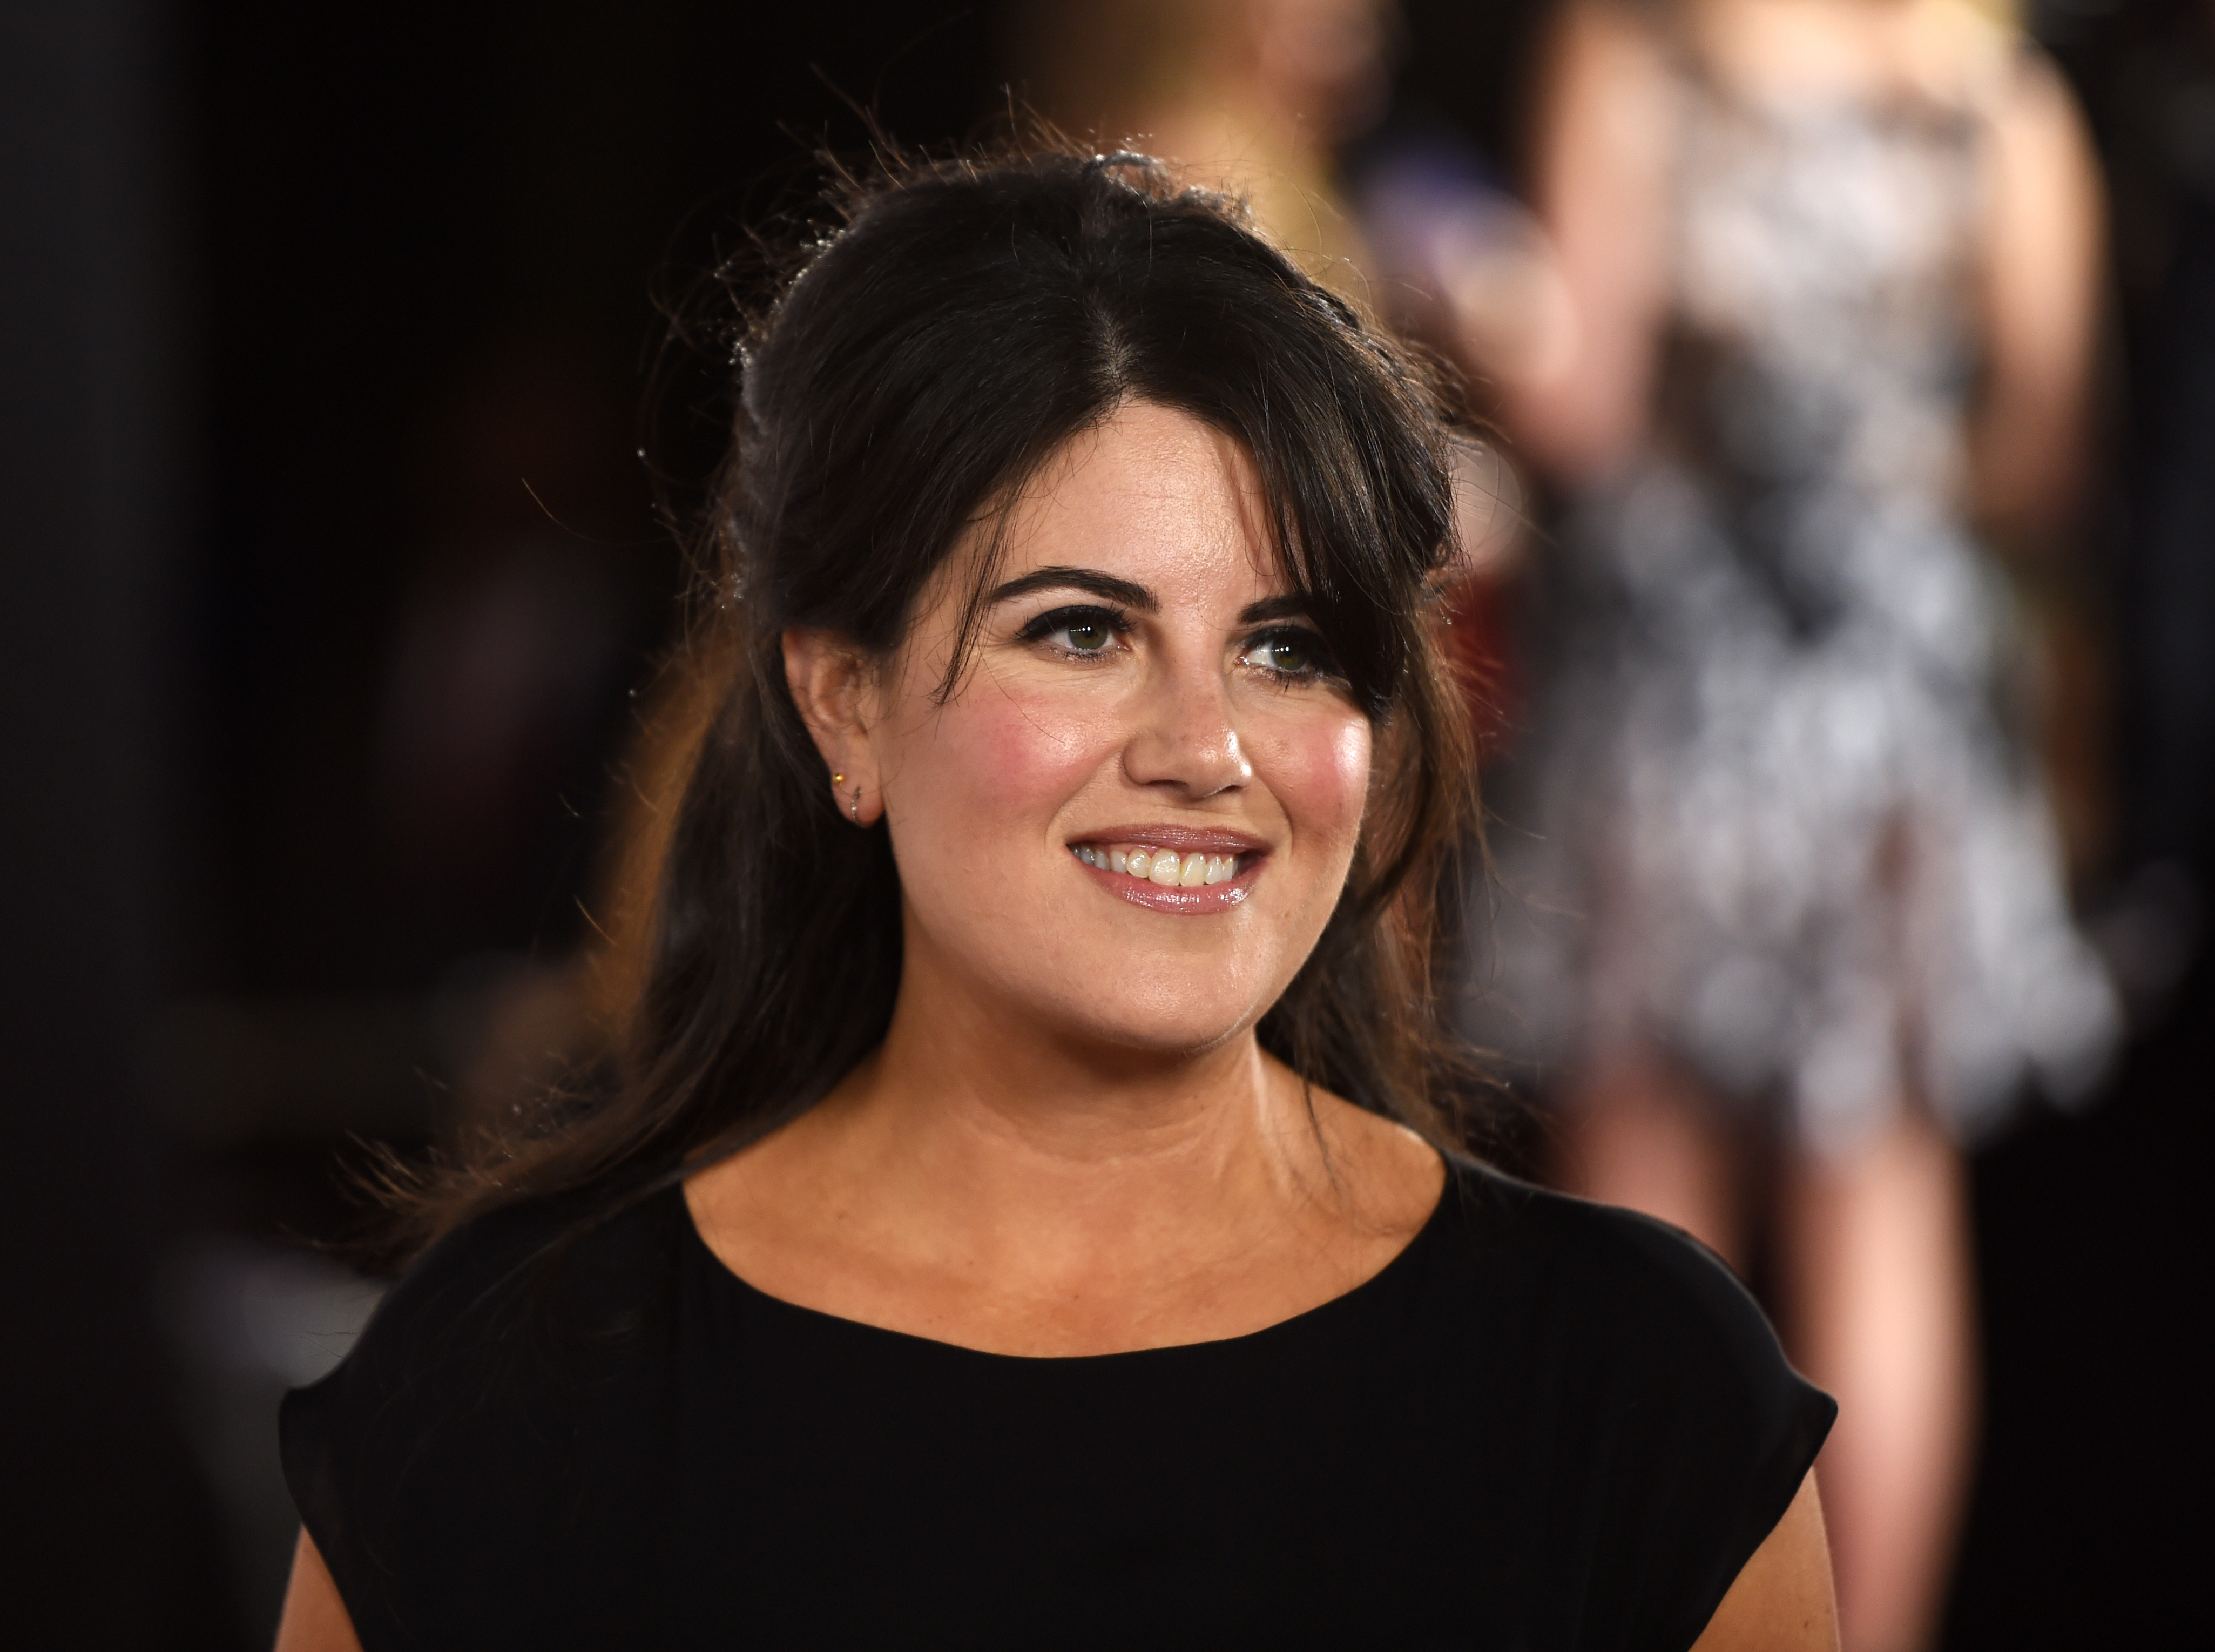 Monica Lewinsky arrives at the TrevorLIVE Los Angeles benefit event at the Hollywood Palladium on December 7, 2014 in Los Angeles, California.